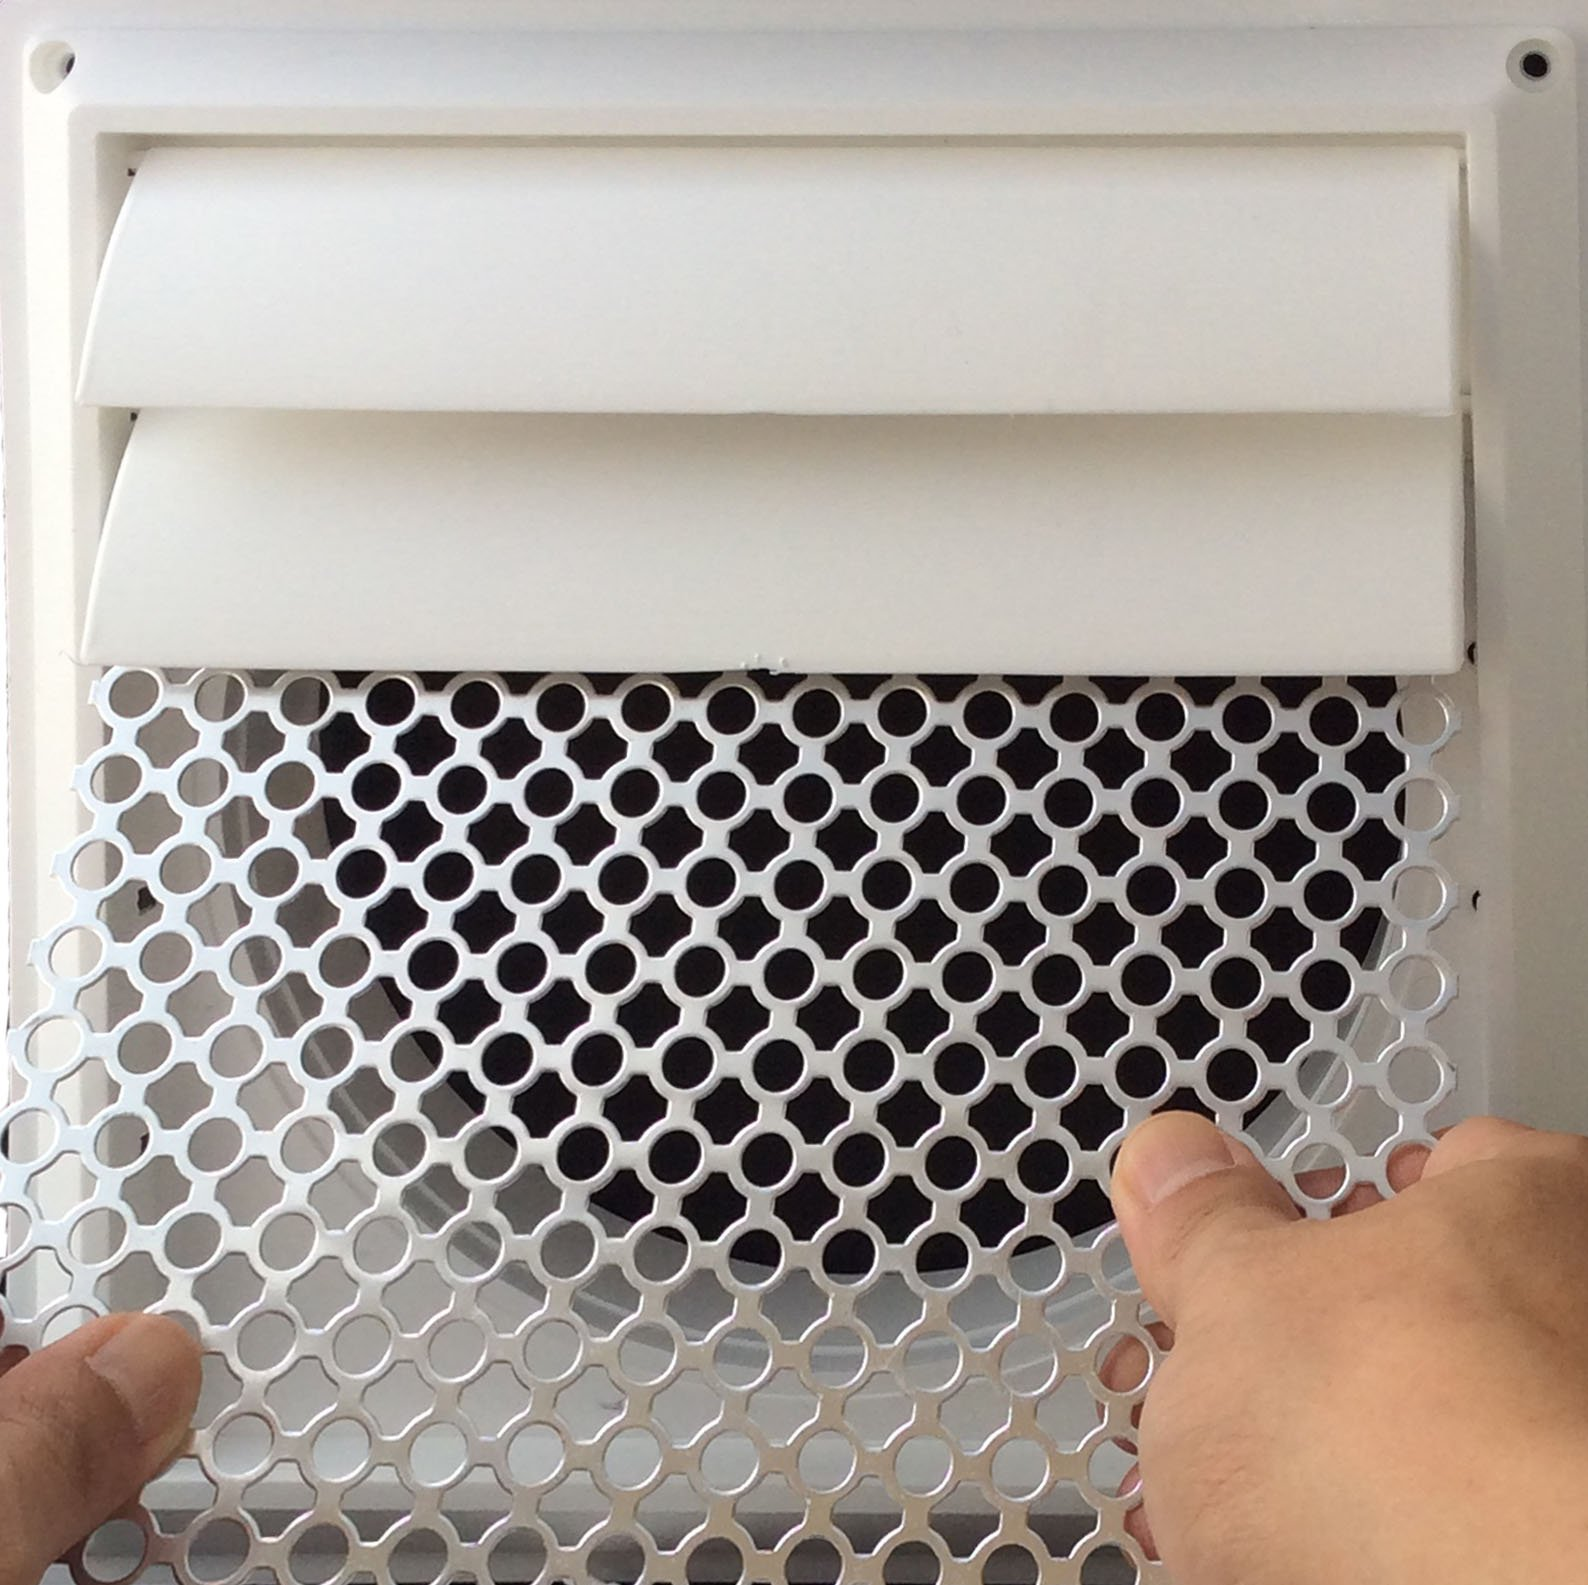 New Aroma Trees Dryer Vent Bird Stop - Dryer Vent Grill - Pest Guard - Stops Birds Nesting In Dryer Vents and Bathroom Exhaust Vents Pipe, Customizable 3'' - 8'' Louver Vent Hood Cover Guard by Aroma Trees (Image #4)